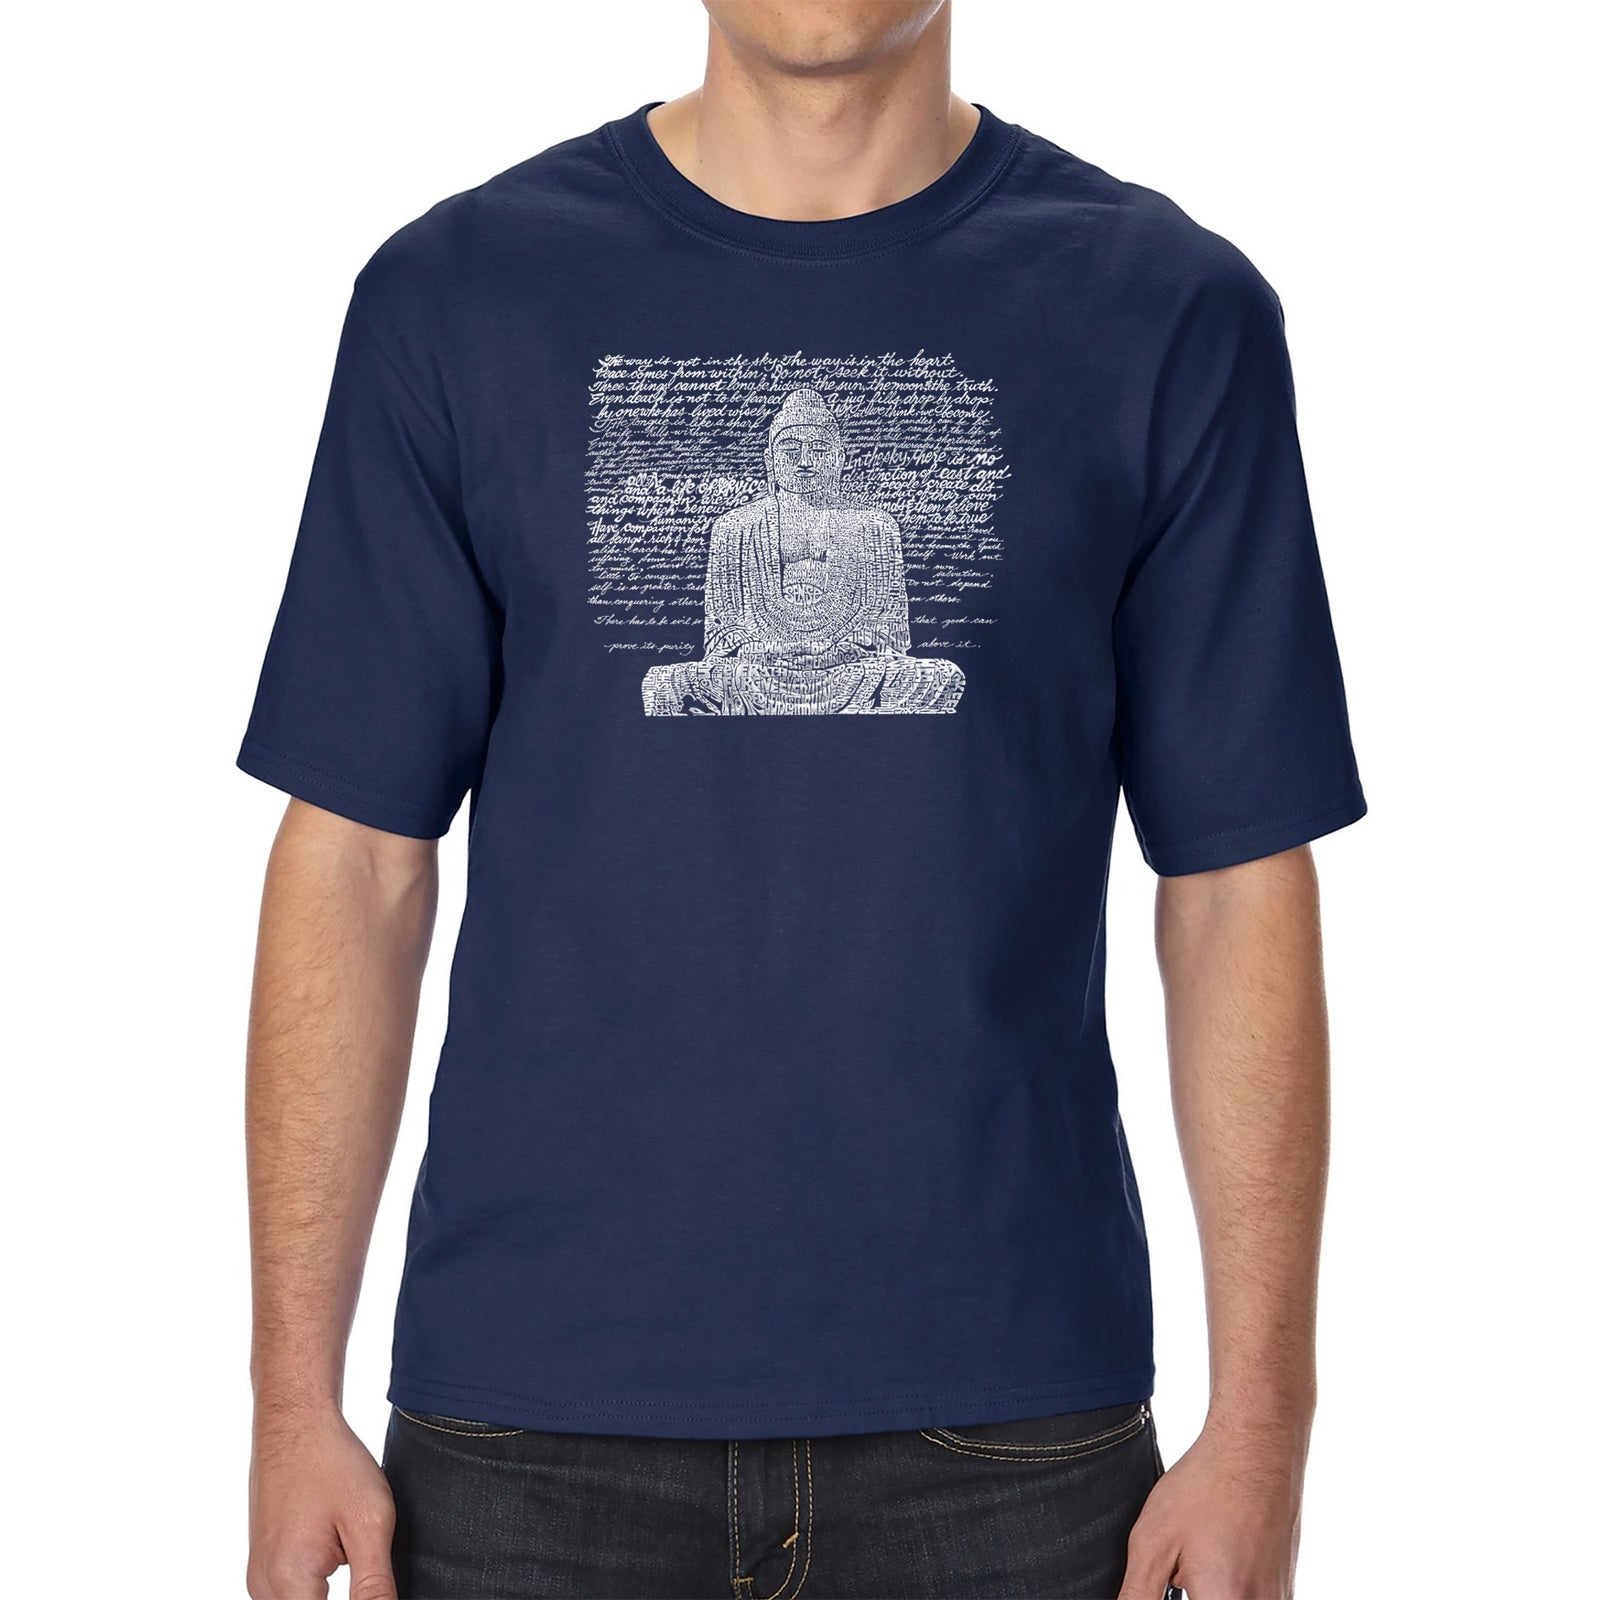 Men's Tall and Long Word Art T-shirt - Zen Buddha